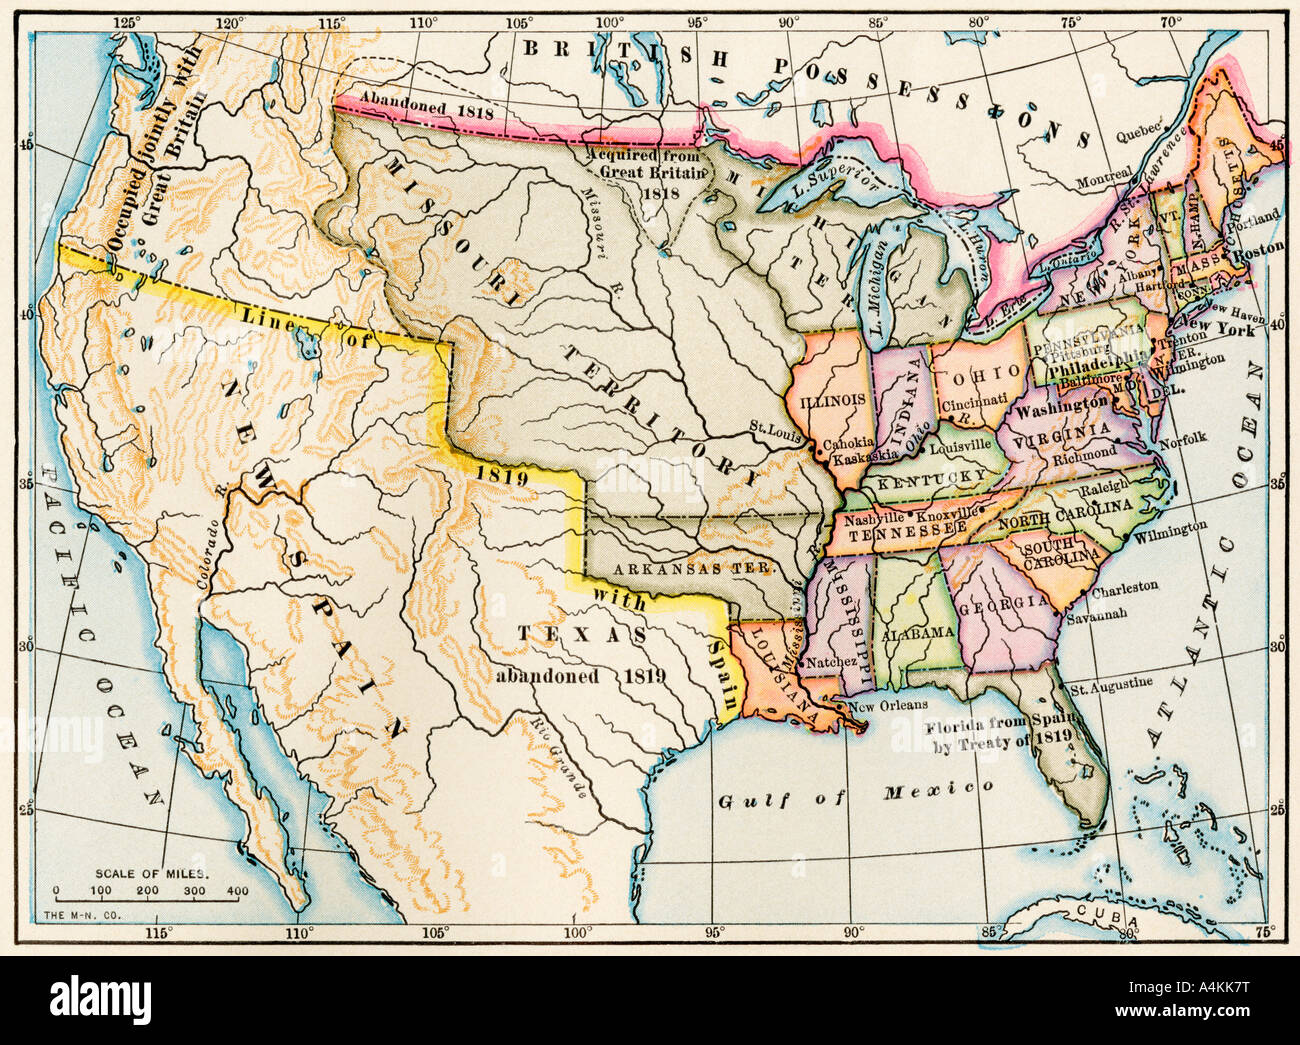 Map of the United States in 1819 showing territory under Spanish